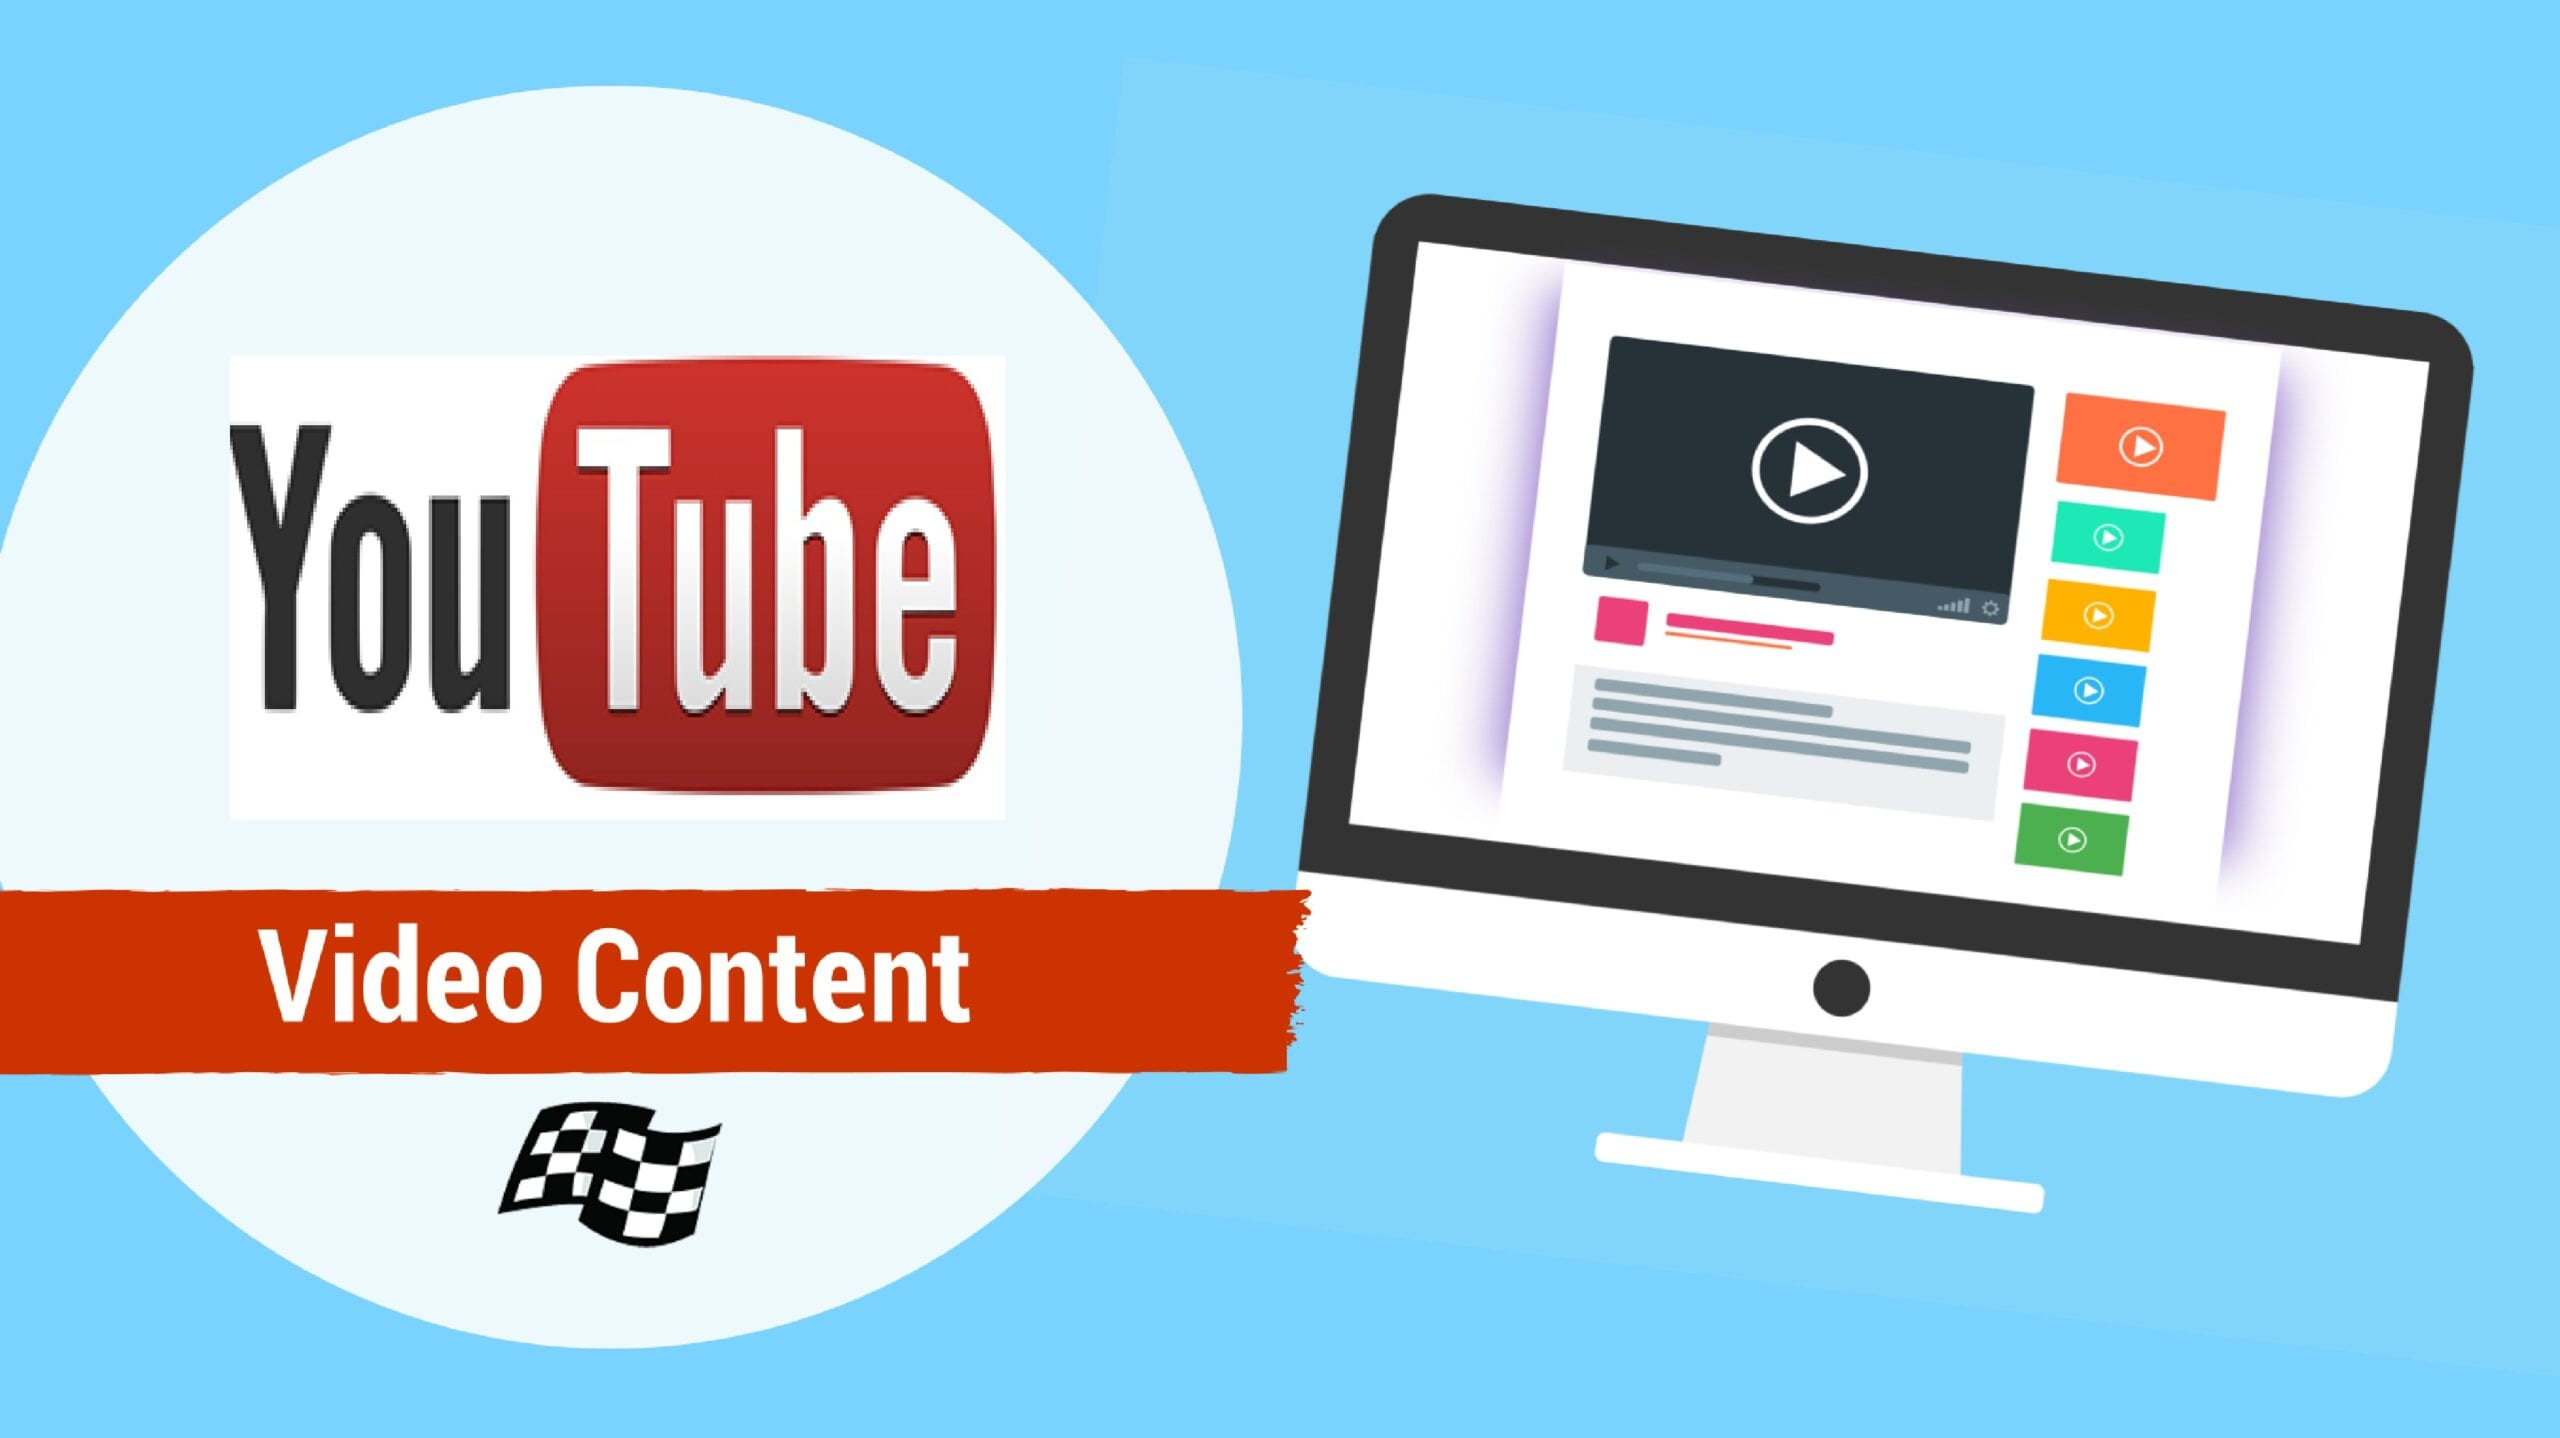 Your Youtube video content boost traffic